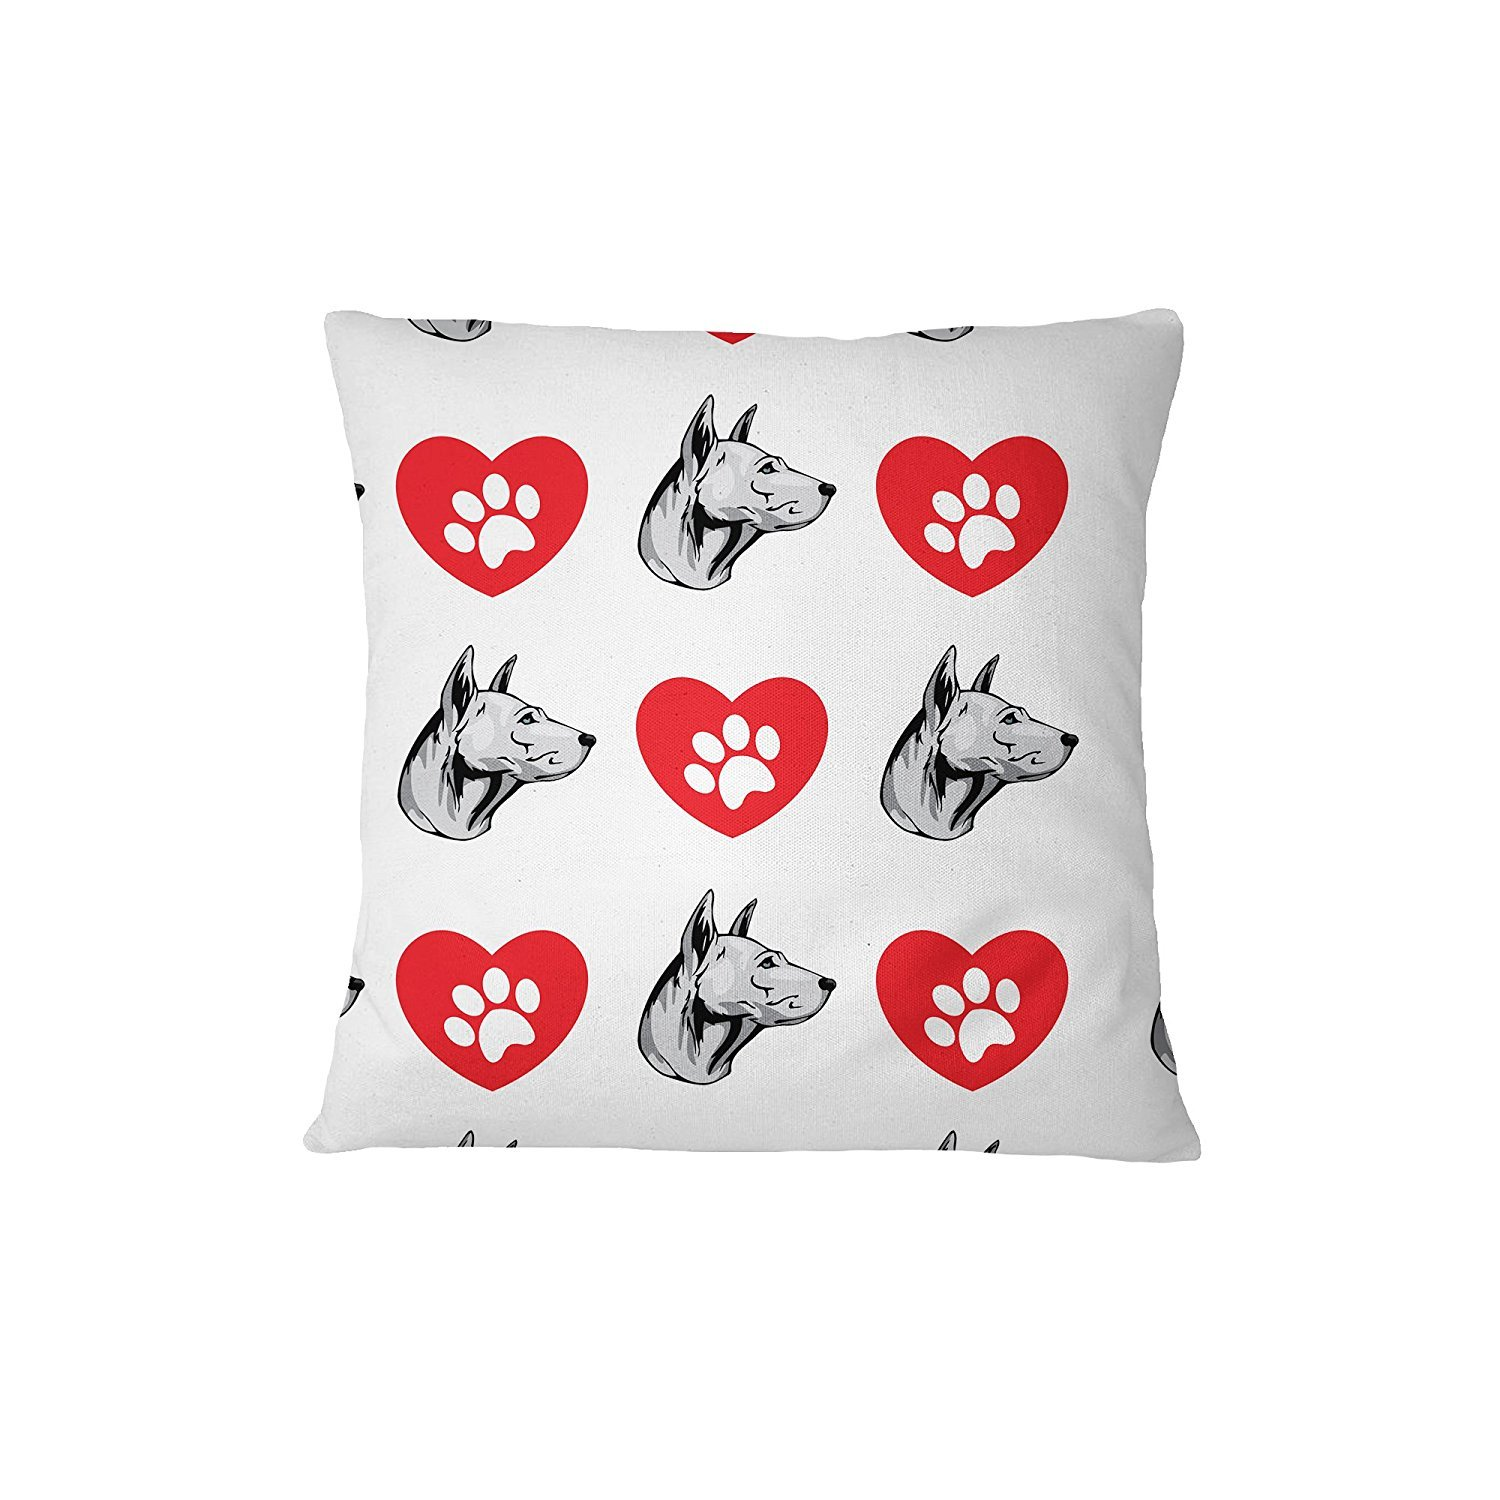 Thai Ridgeback Dog Heart Paws Sofa Bed Home Decor Pillow Cover Pillow & Cover Set ArtsLifes by ArtsLifes